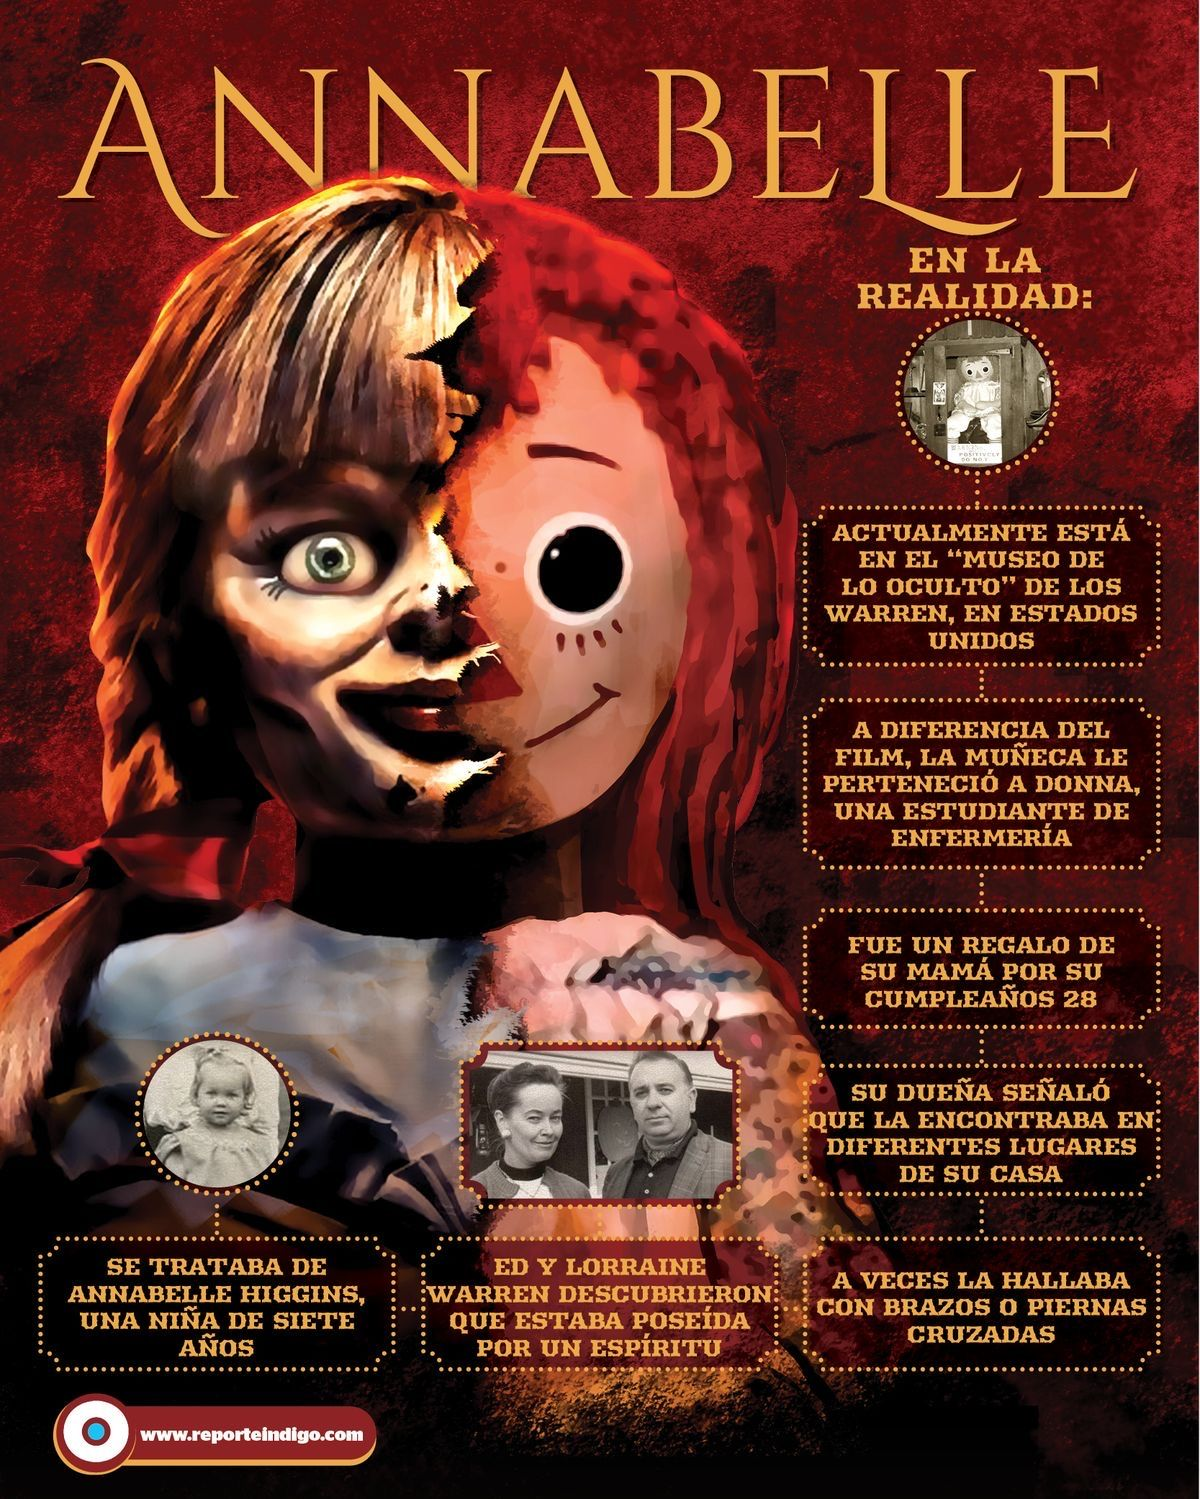 Pin By Jeanne Loves Horror On The Conjuring Universe Movies Horror Movie Icons Annabelle Doll Scary Movies